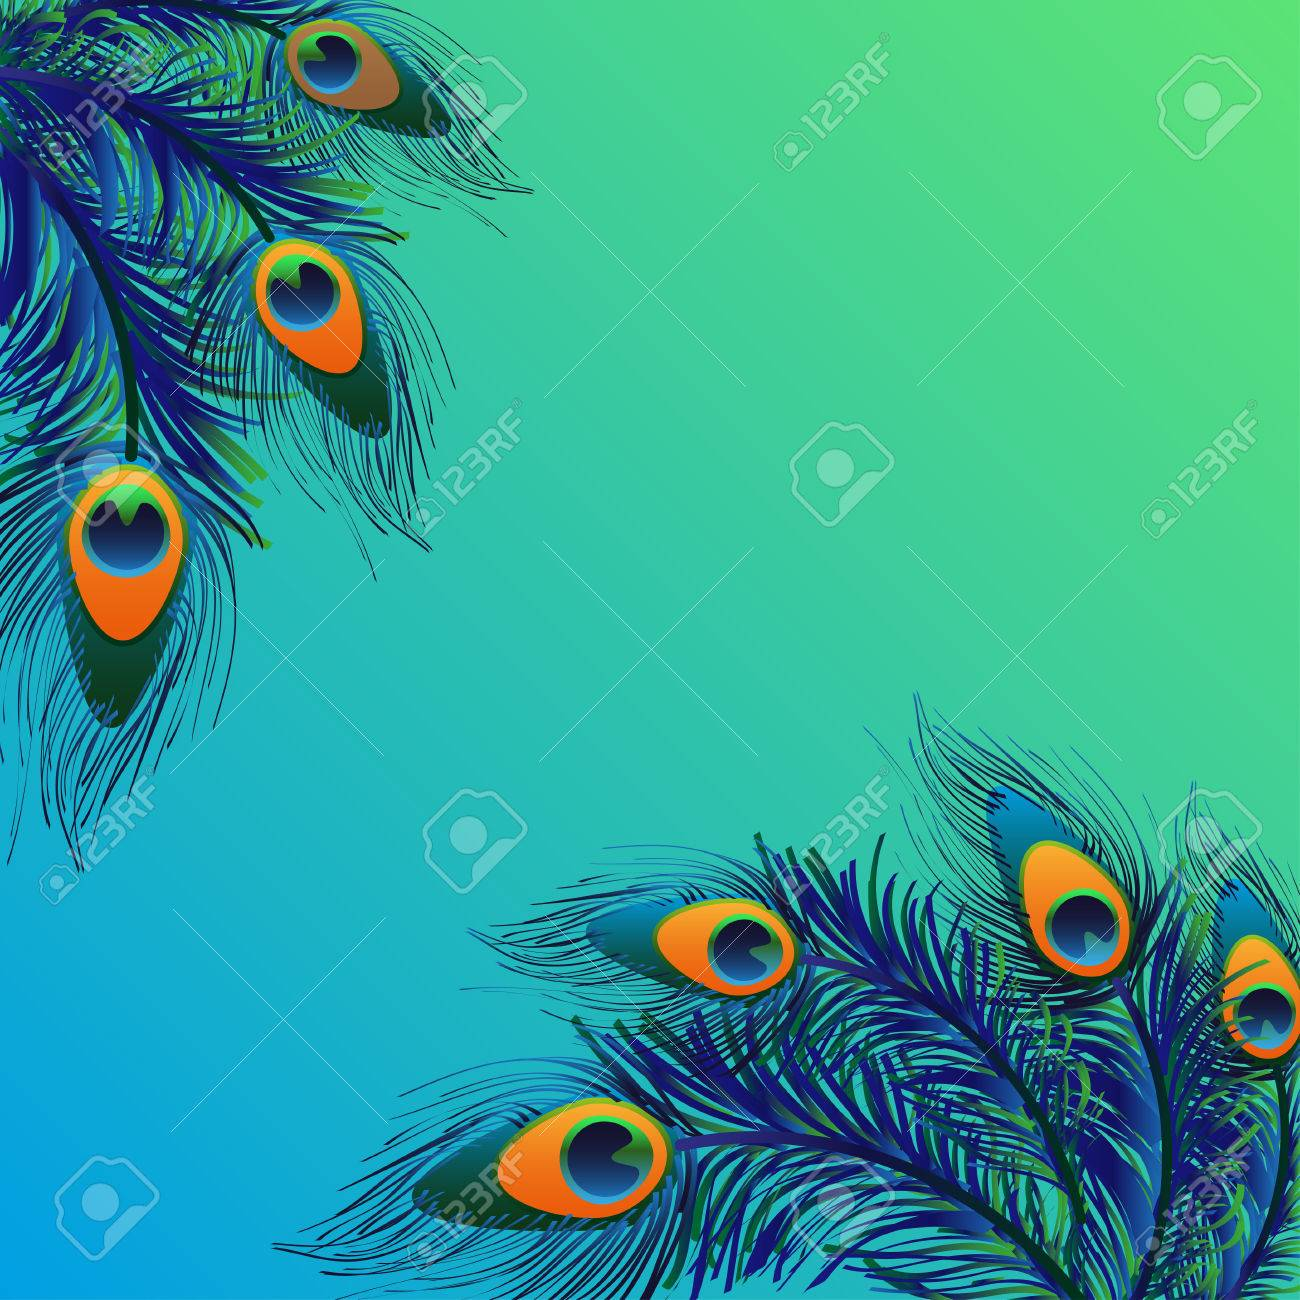 design background with feathers peacock card stock photo picture